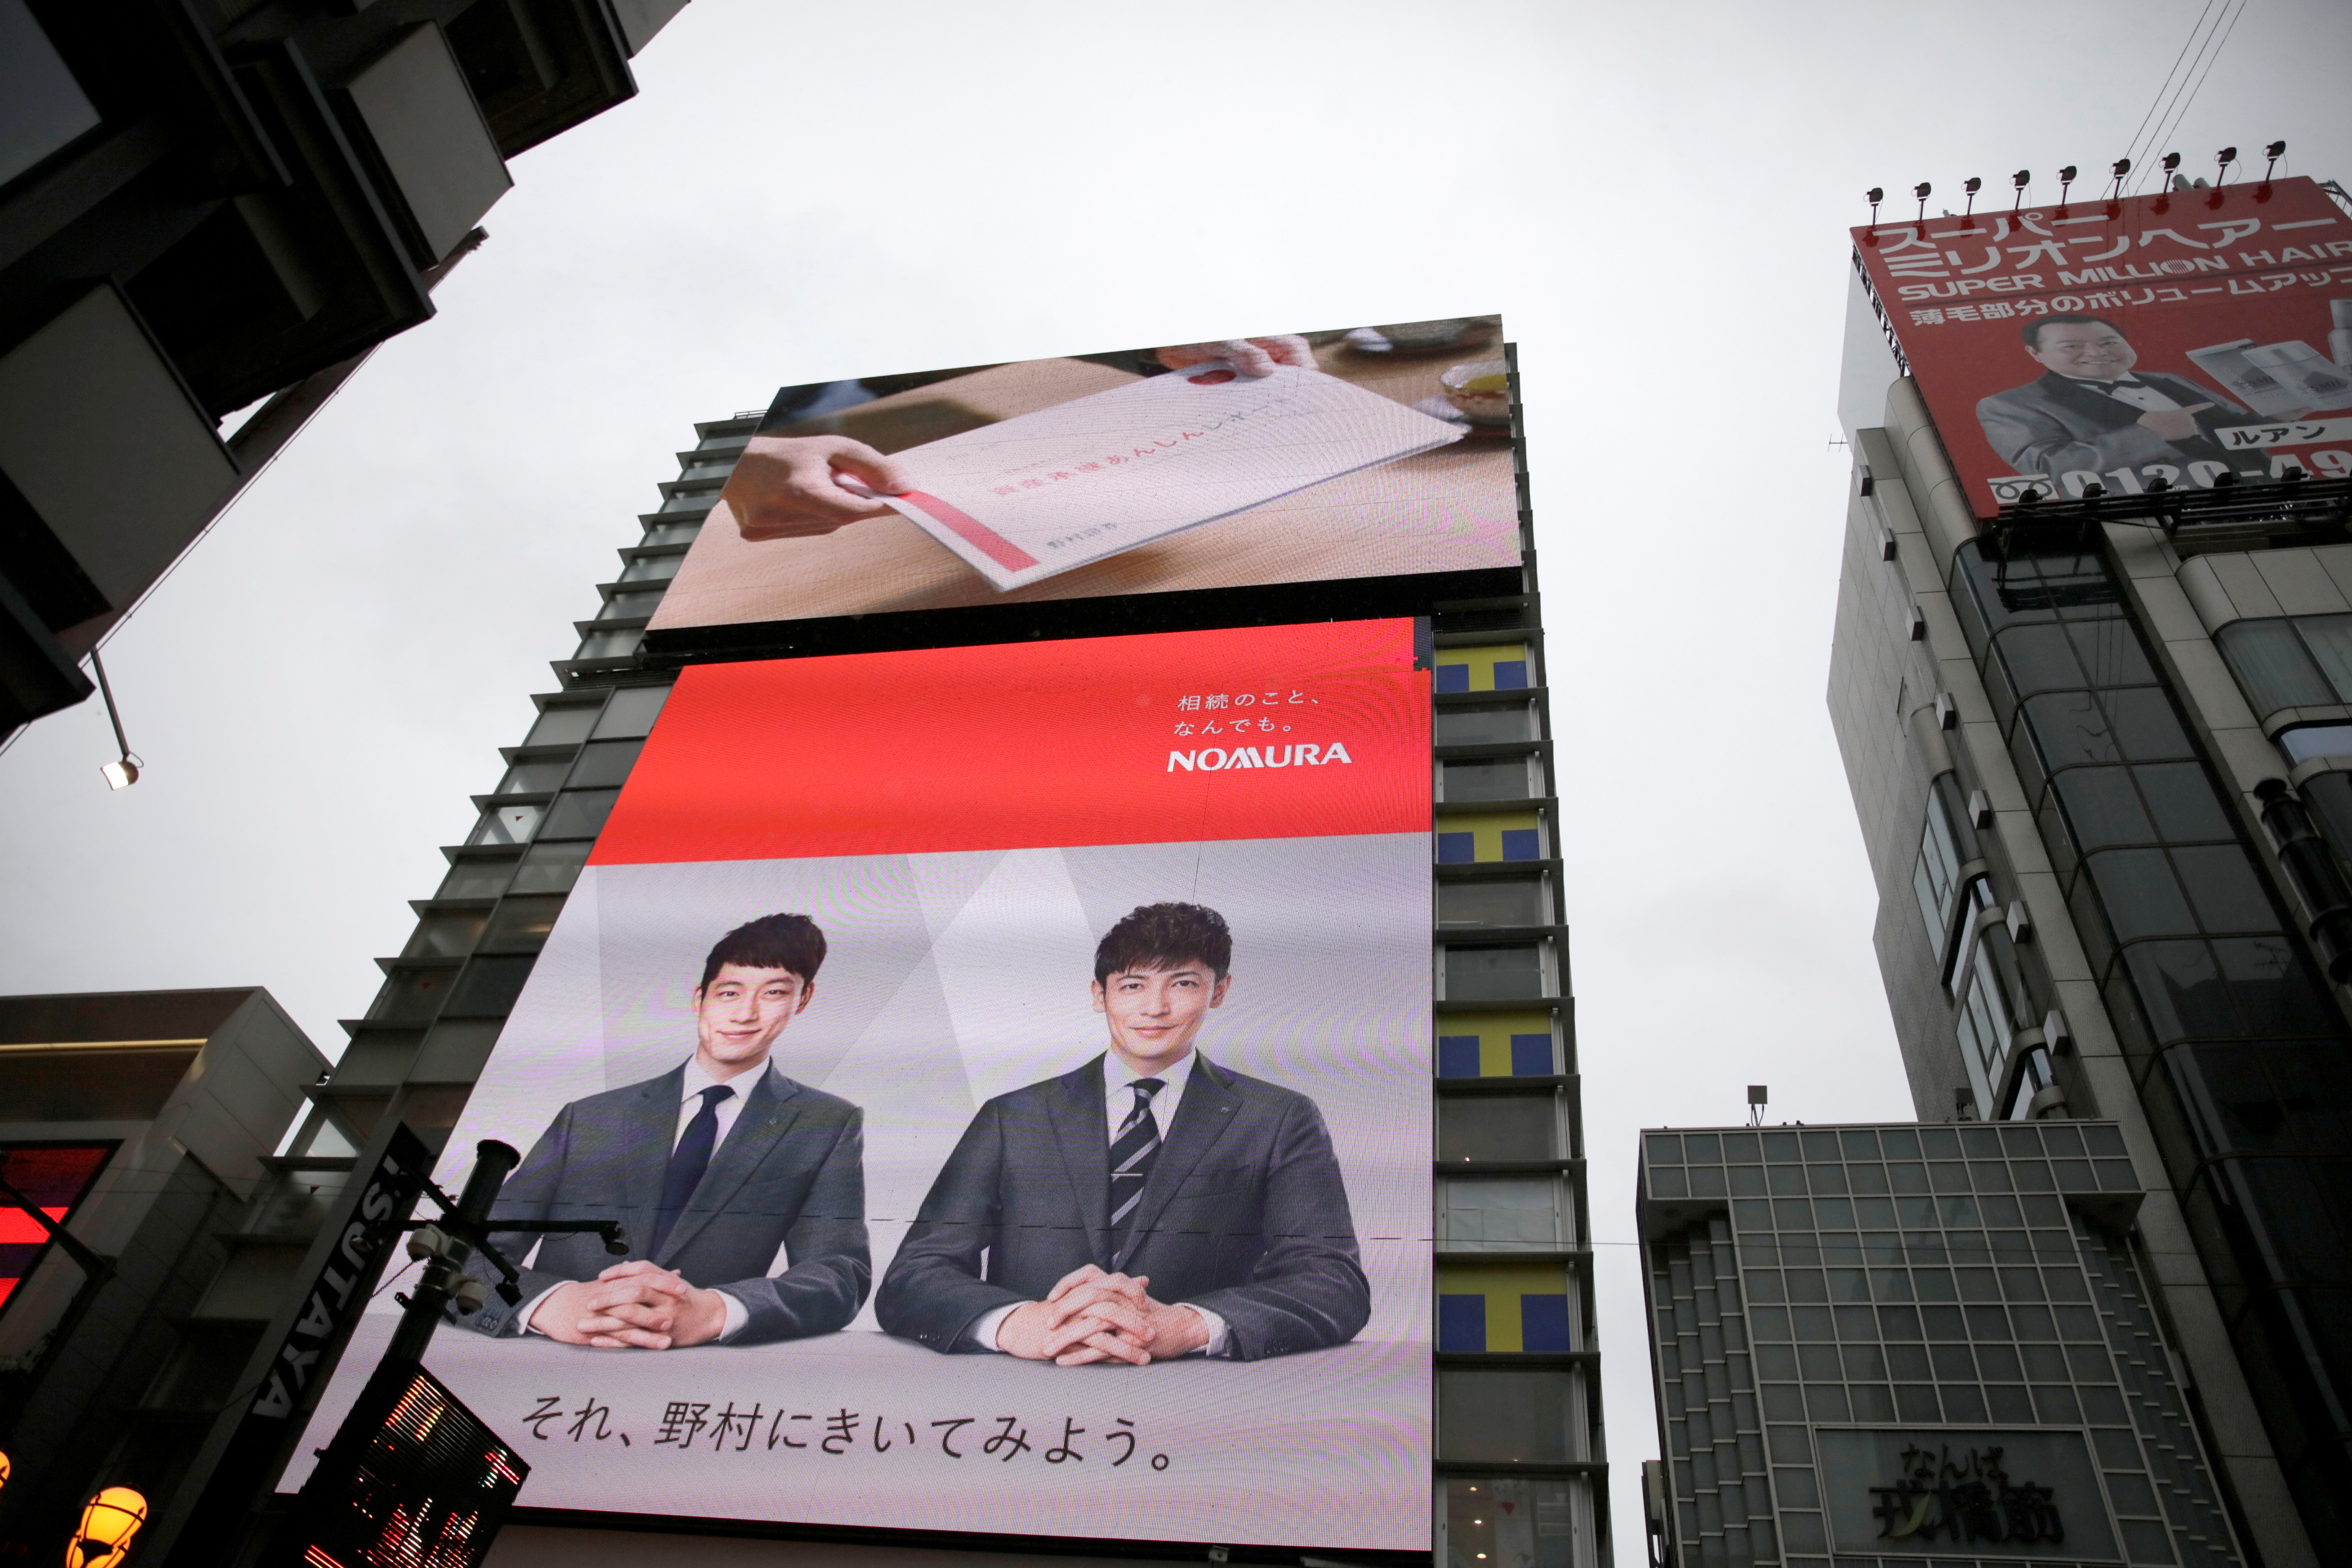 A Nomura commercial is shown on a television screen in Osaka, western Japan October 22, 2017.   Picture taken October 22, 2017.  REUTERS/Thomas White